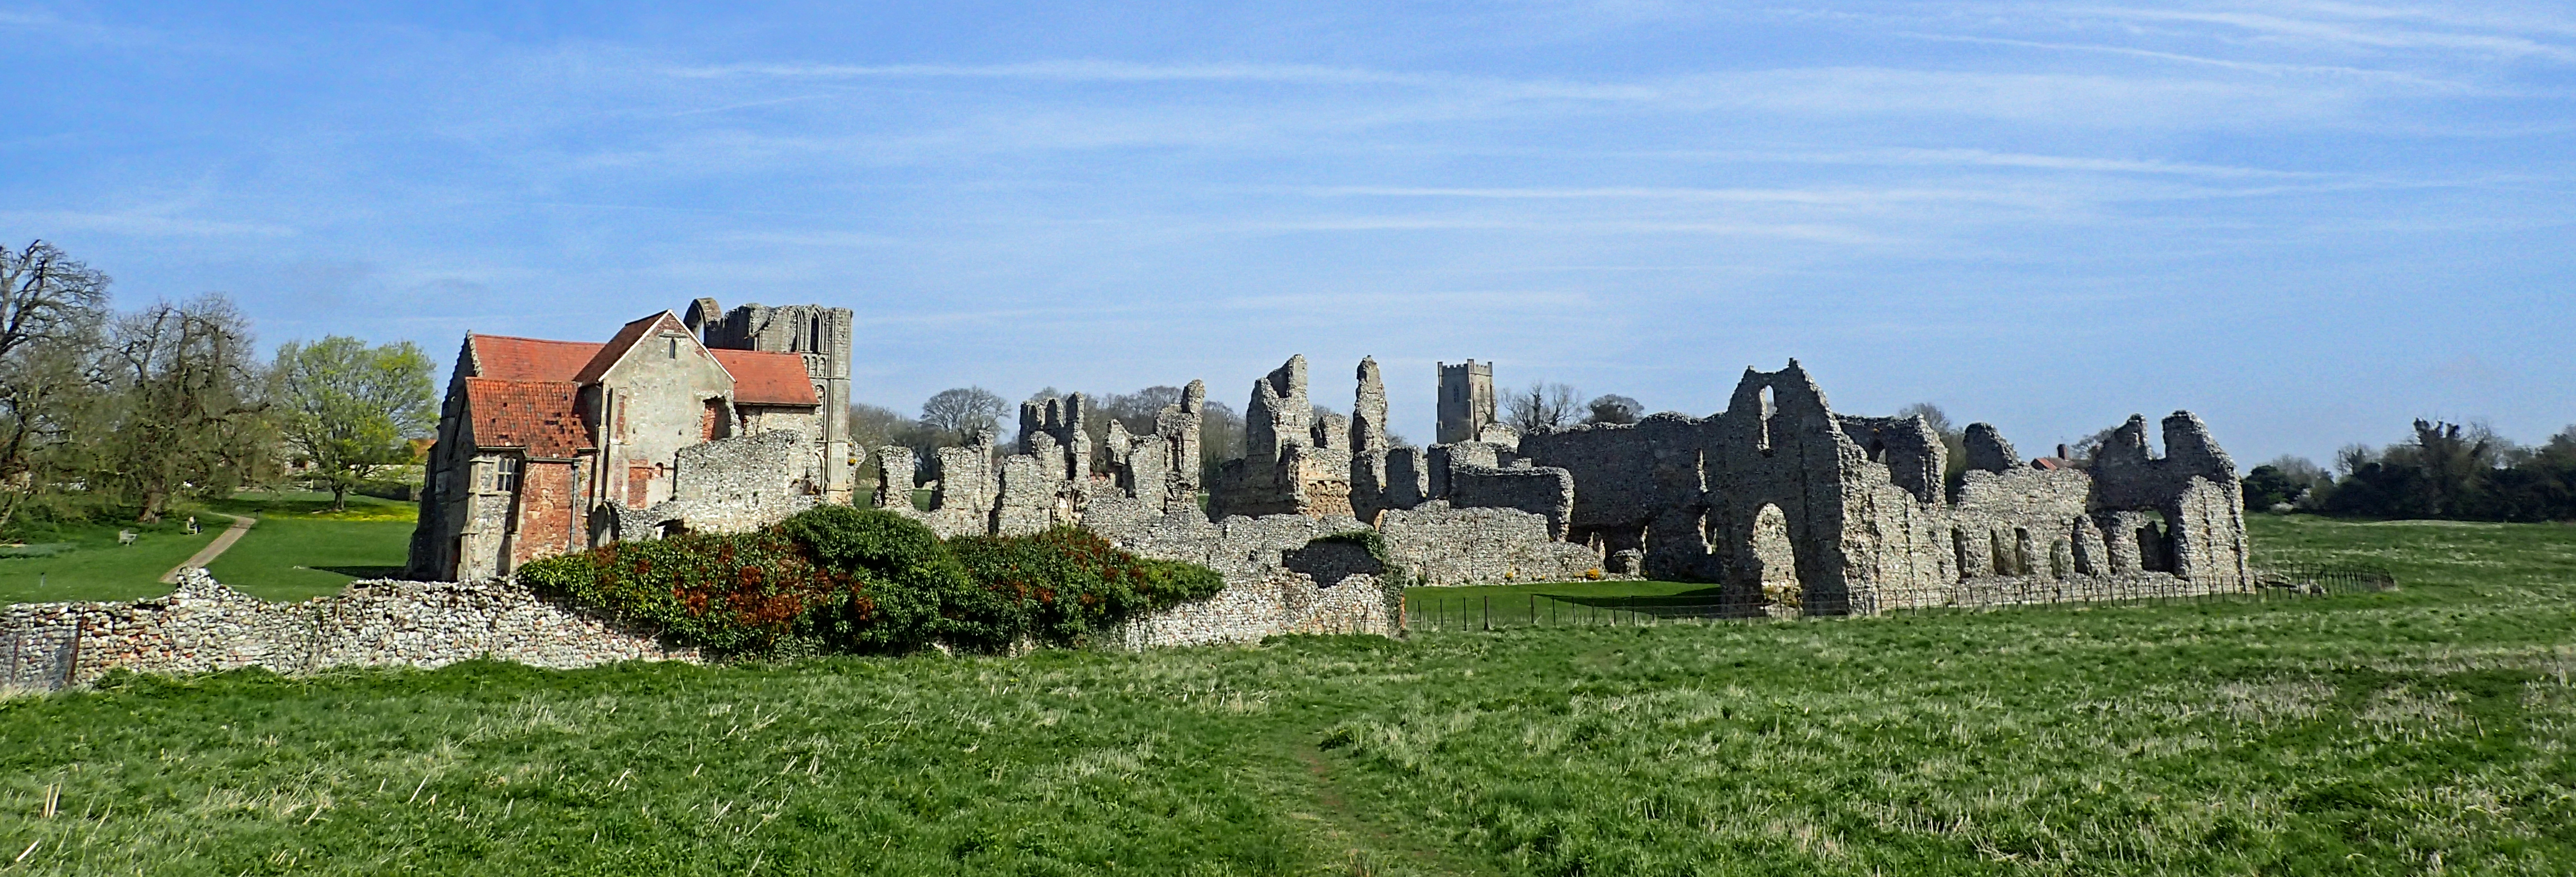 The gem of the Peddars Way is probably the remains of the Cluniac Priory at Castle Acre. I chose not to join the hordes of people, instead, walking the circumference